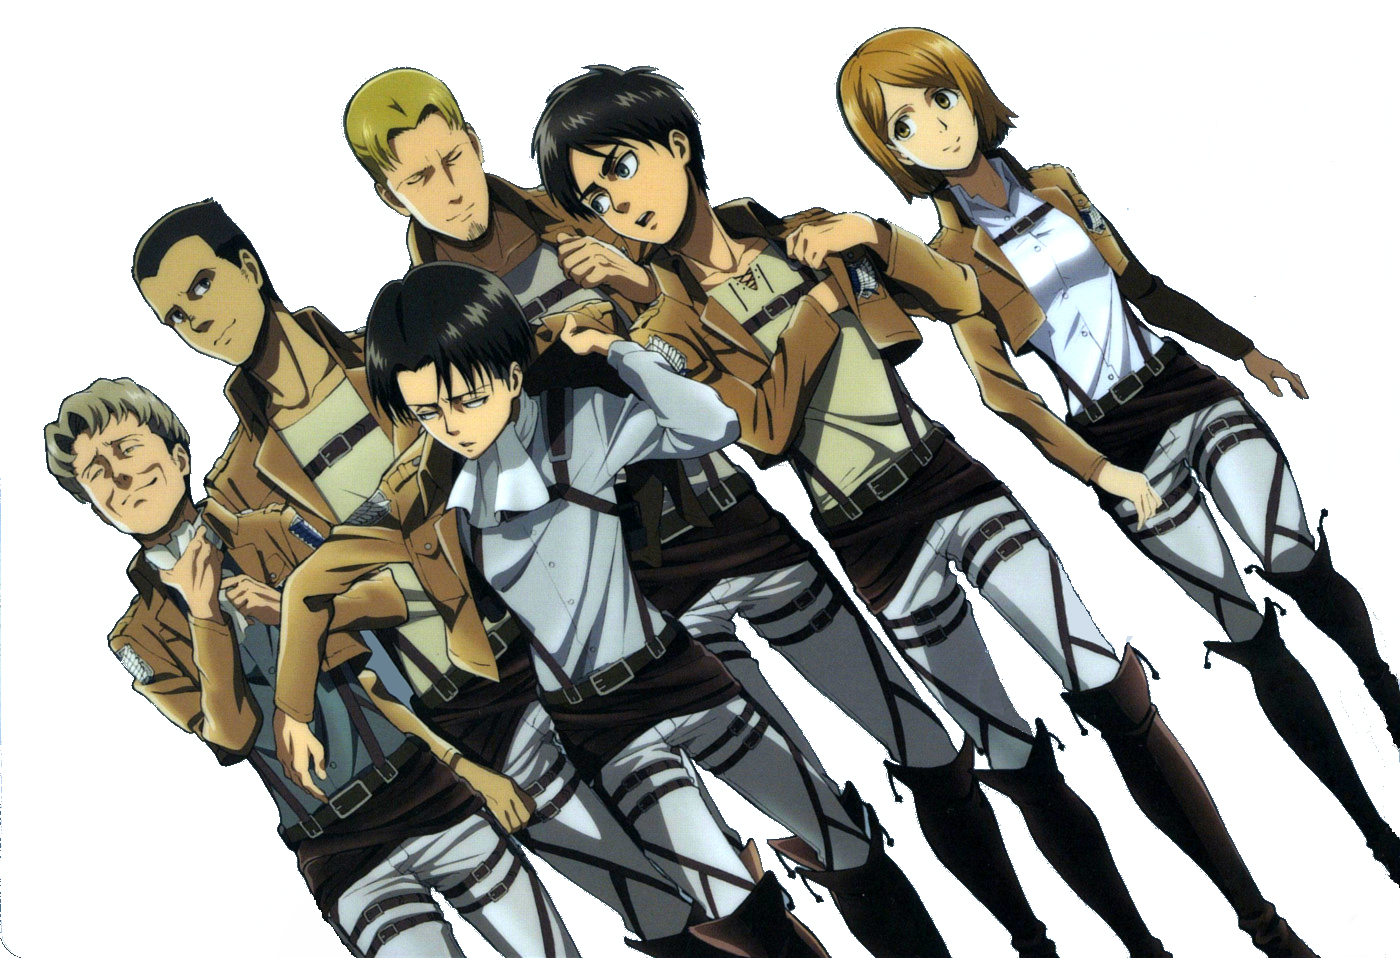 Download Wallpaper From Anime Attack On Titan With Tags Download Eren Yeager Levi Ackerman Petra Ral Gunther Schultz Eld Jinn Oluo Bozado